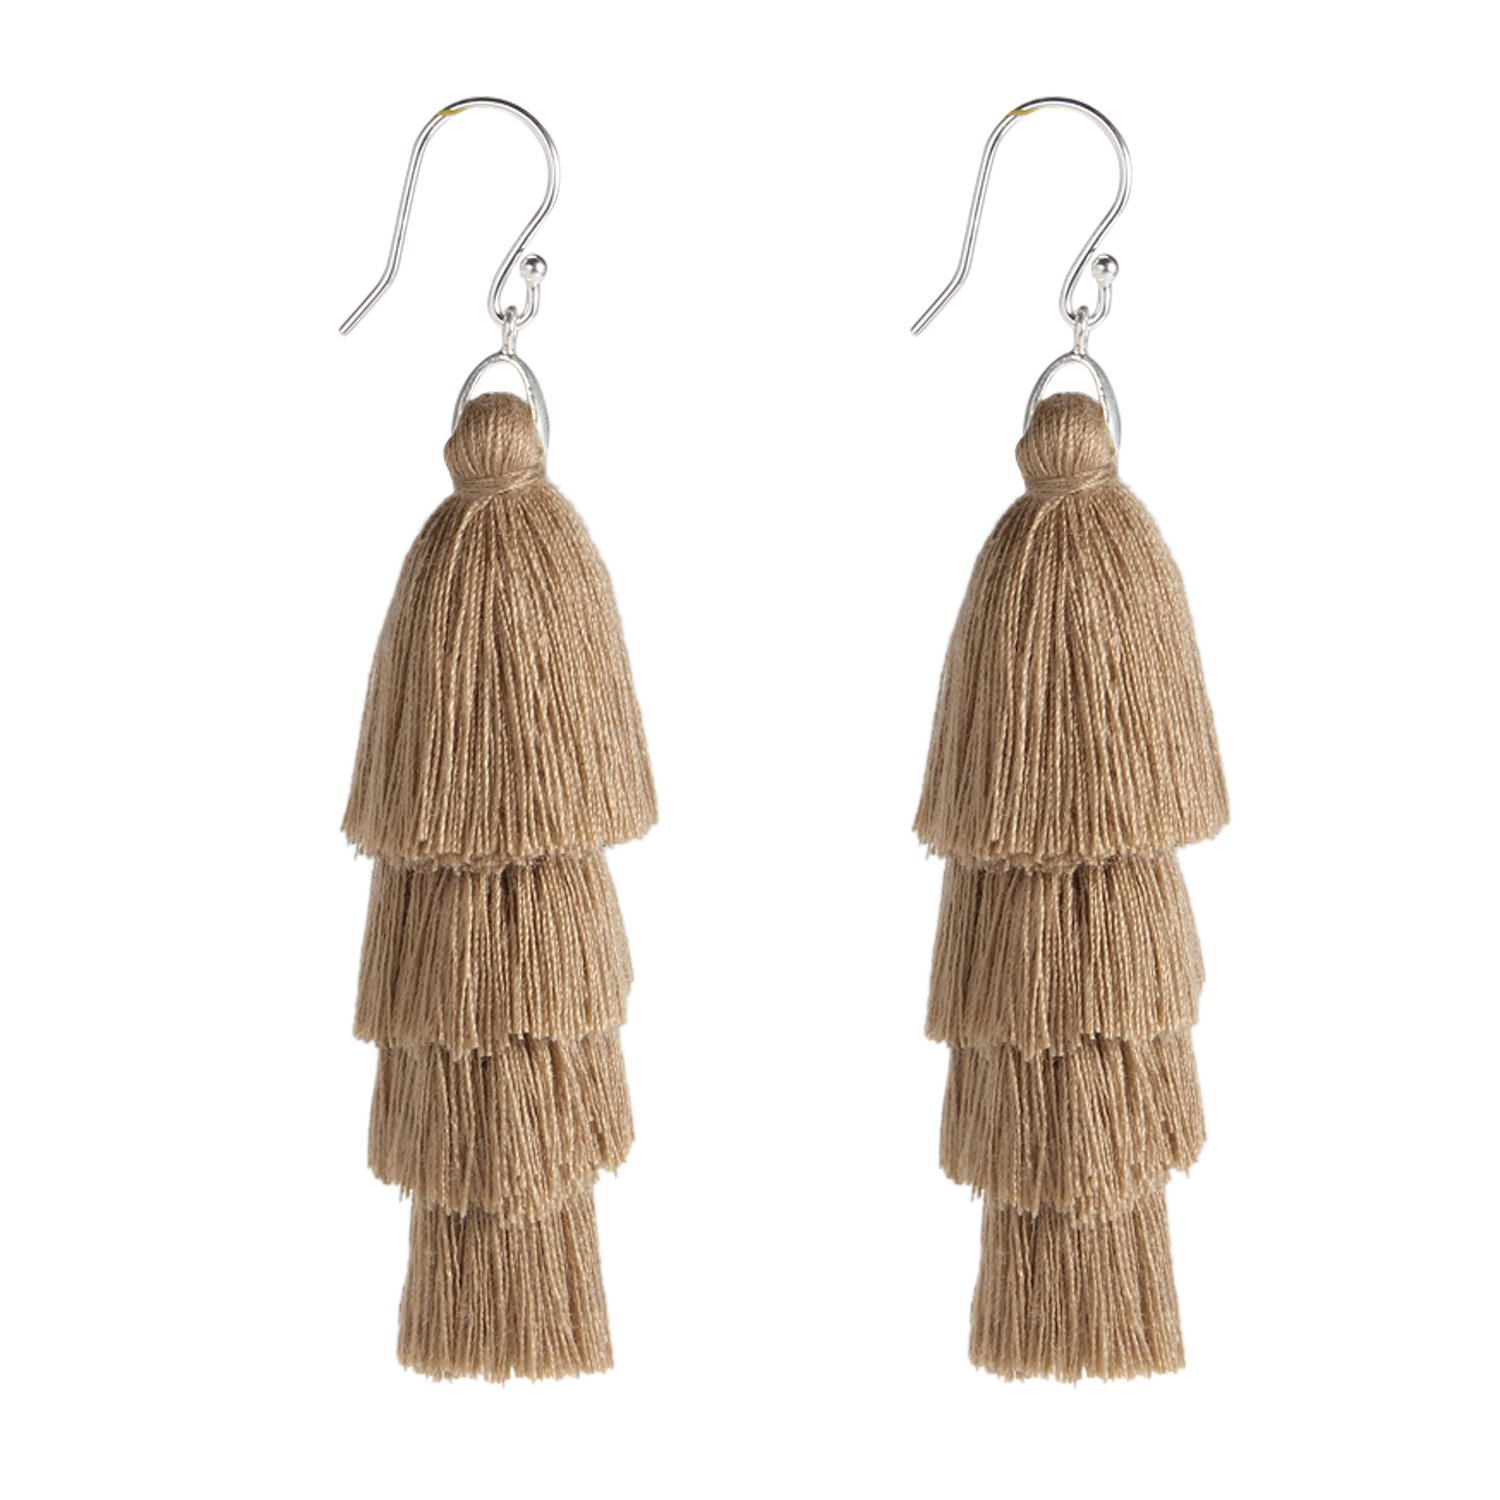 Bonnie 4 Tiered Thread Solid Fringe Layered Tassels Earring for Women Girls (Light Brown)